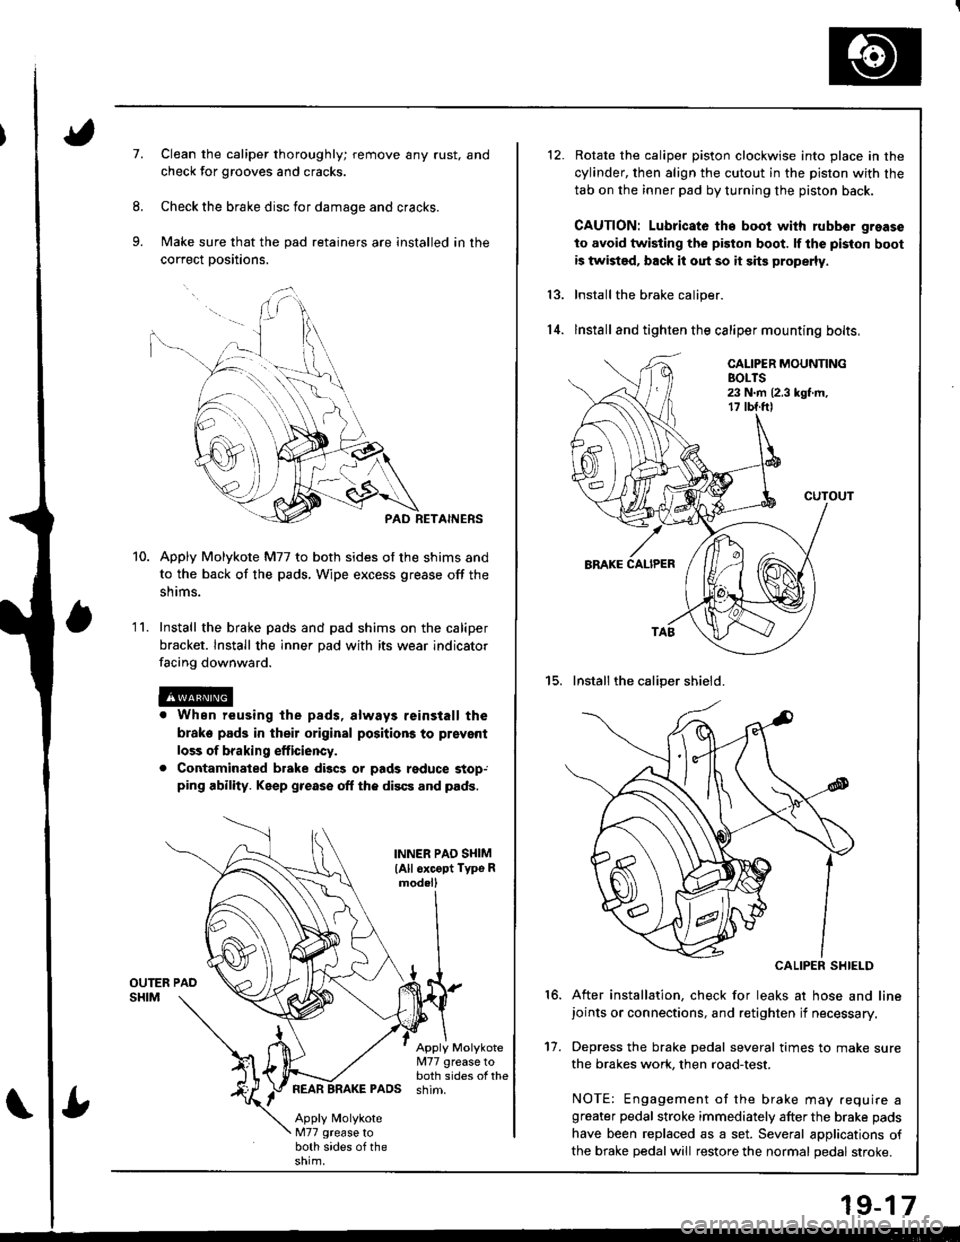 HONDA INTEGRA 1998 4.G Workshop Manual 7.Clean the caliper thoroughly; remove any rust, and check for grooves and cracks. Check the brake disc for damage and cracks. Make sure that the pad retainers are installed in the correct positions.